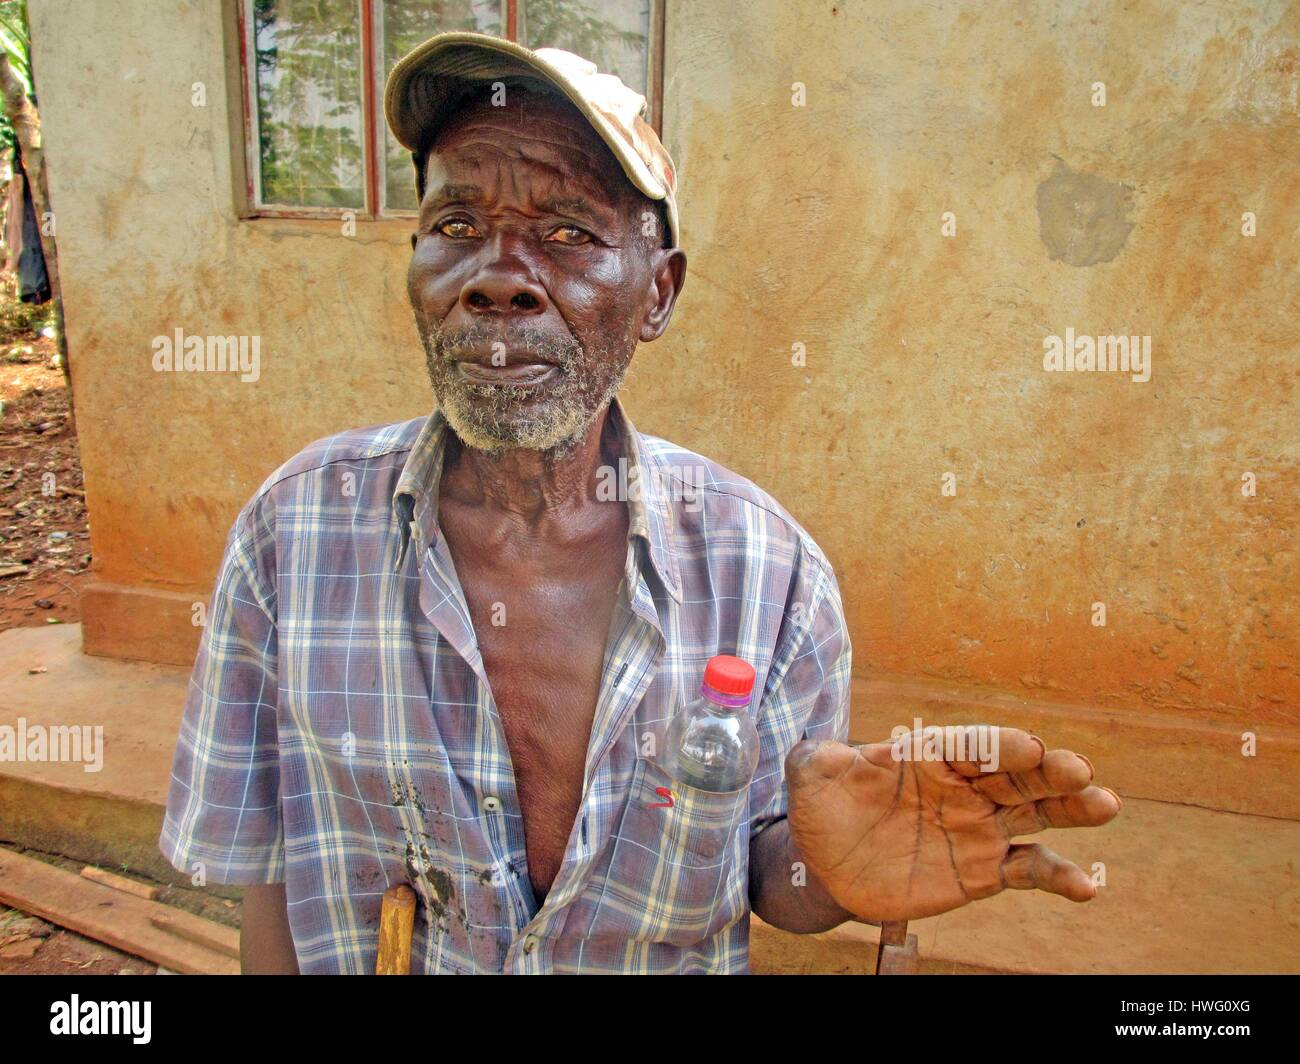 World War II veteran Aloysius Lubega is seen in front of his home in Mugomba village, Uganda, on February 09, 2017. - Stock Image